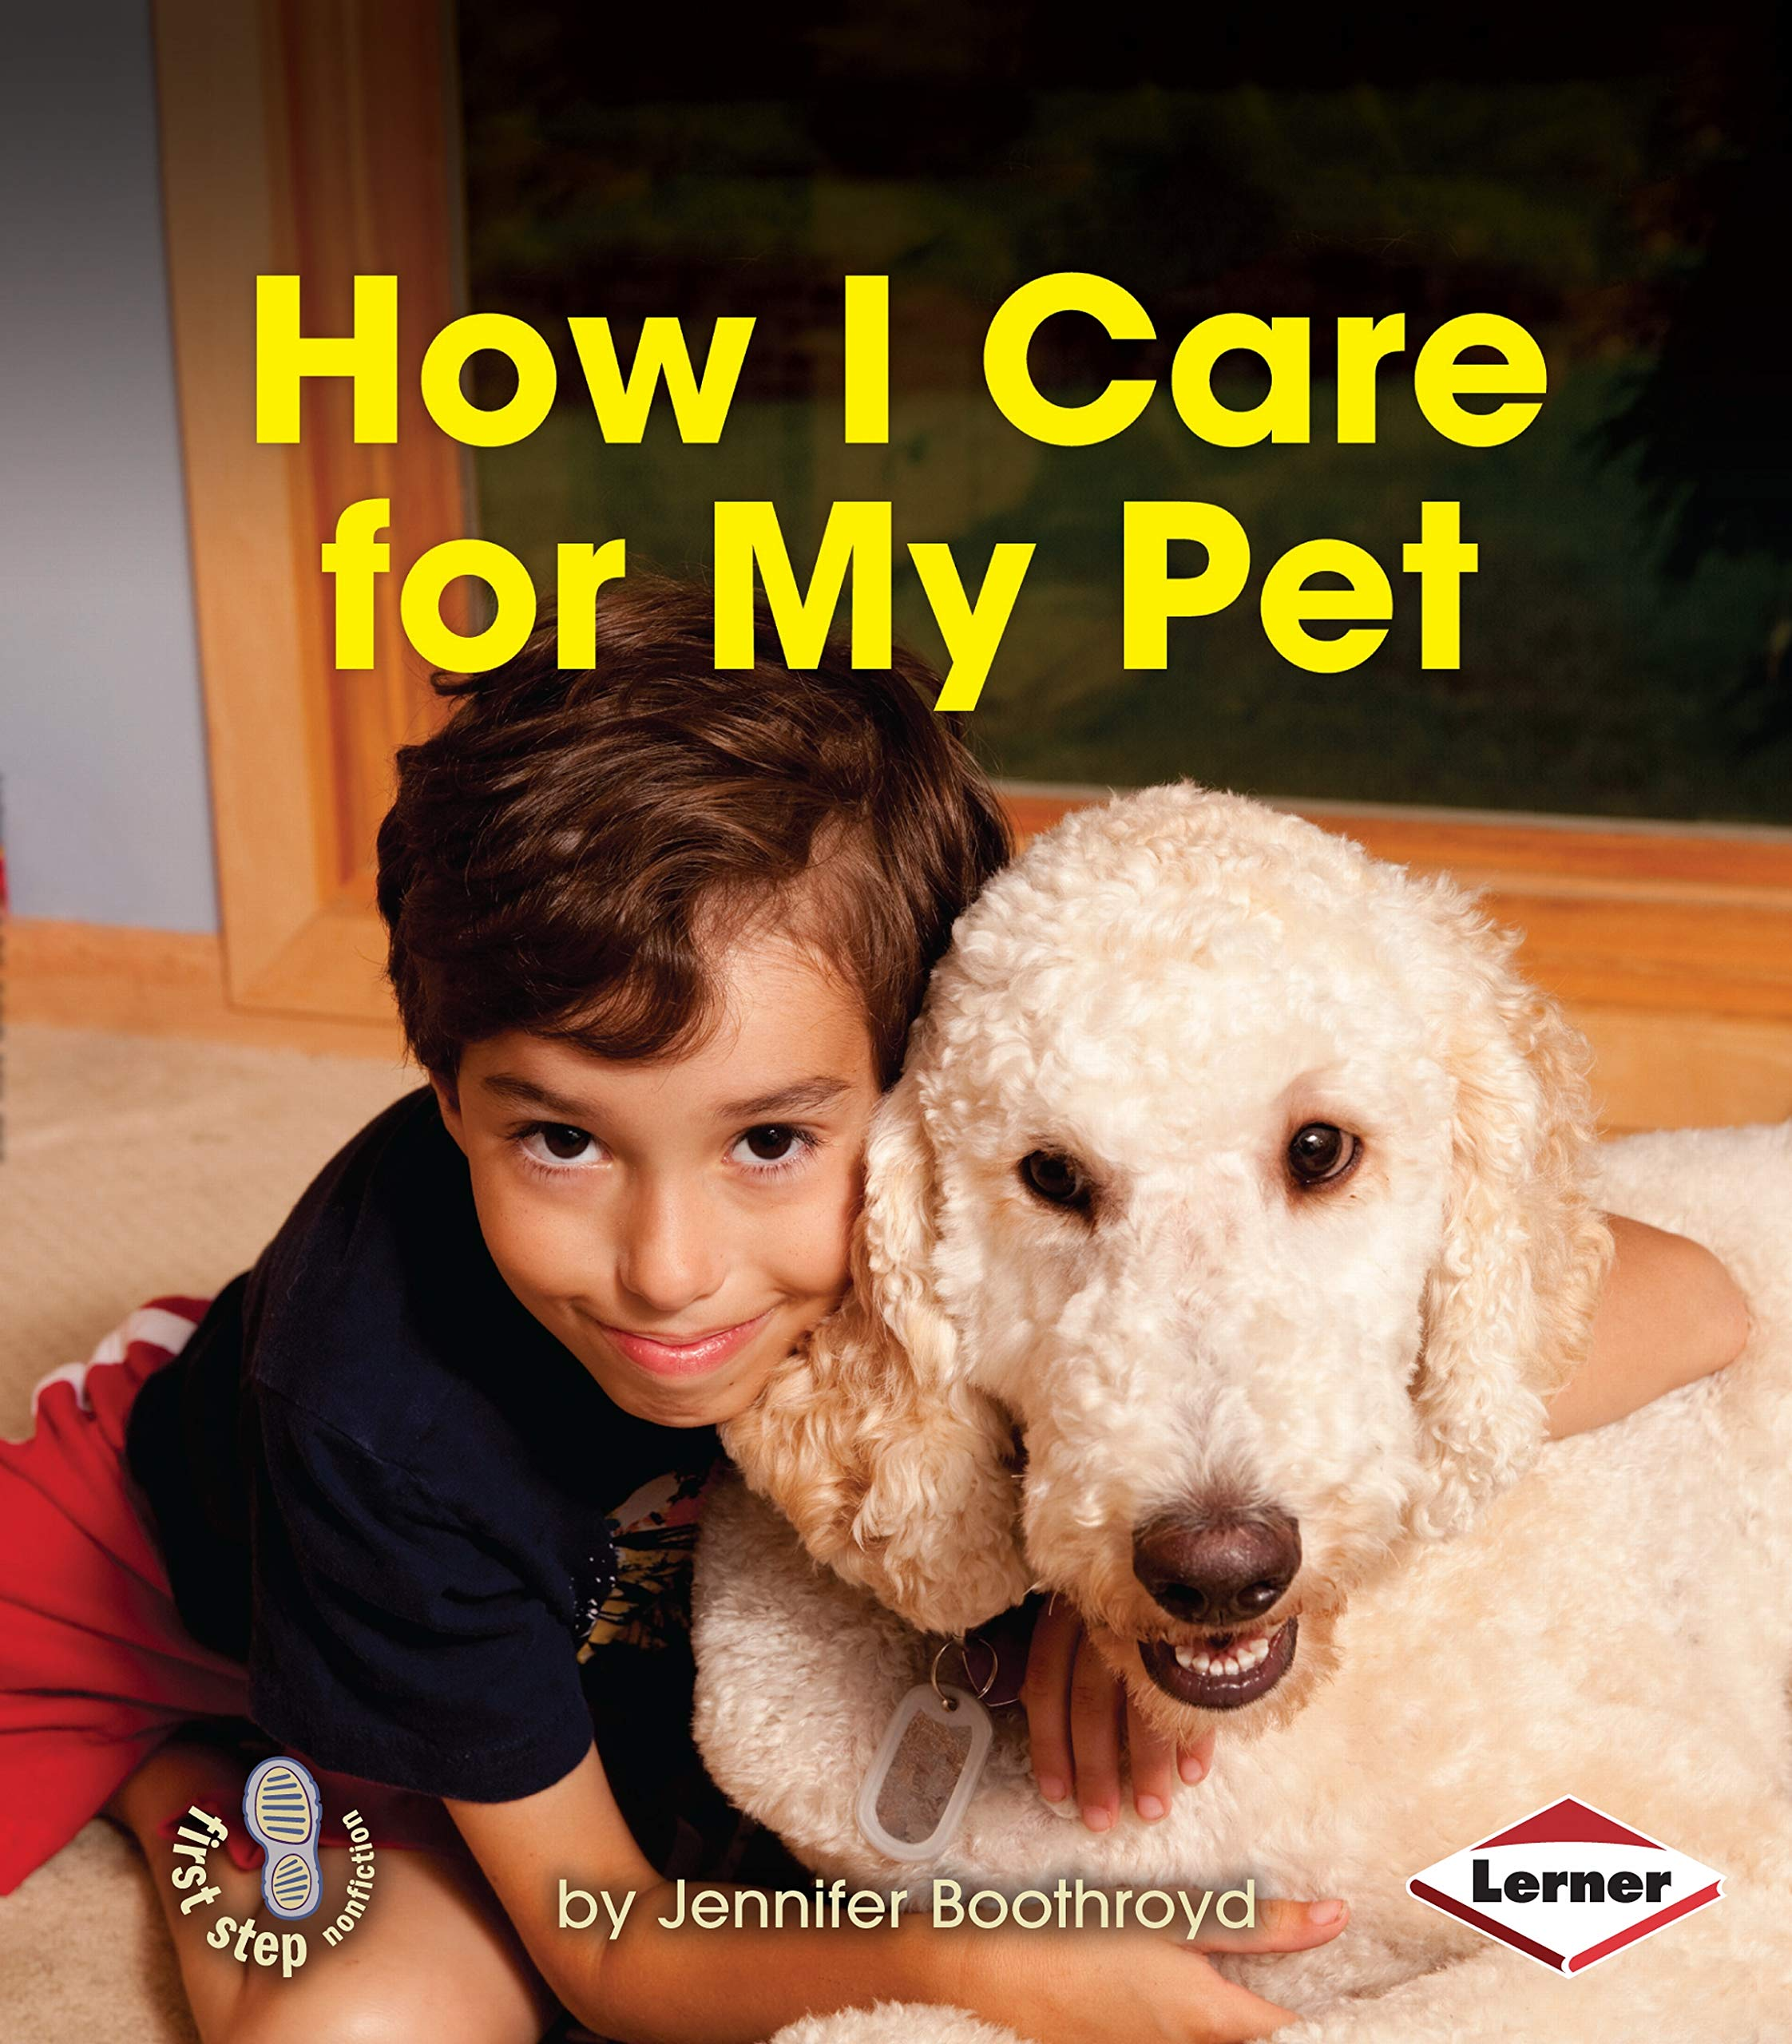 Download How I Care for My Pet (First Step Nonfiction - Responsibility in Action) PDF ePub book